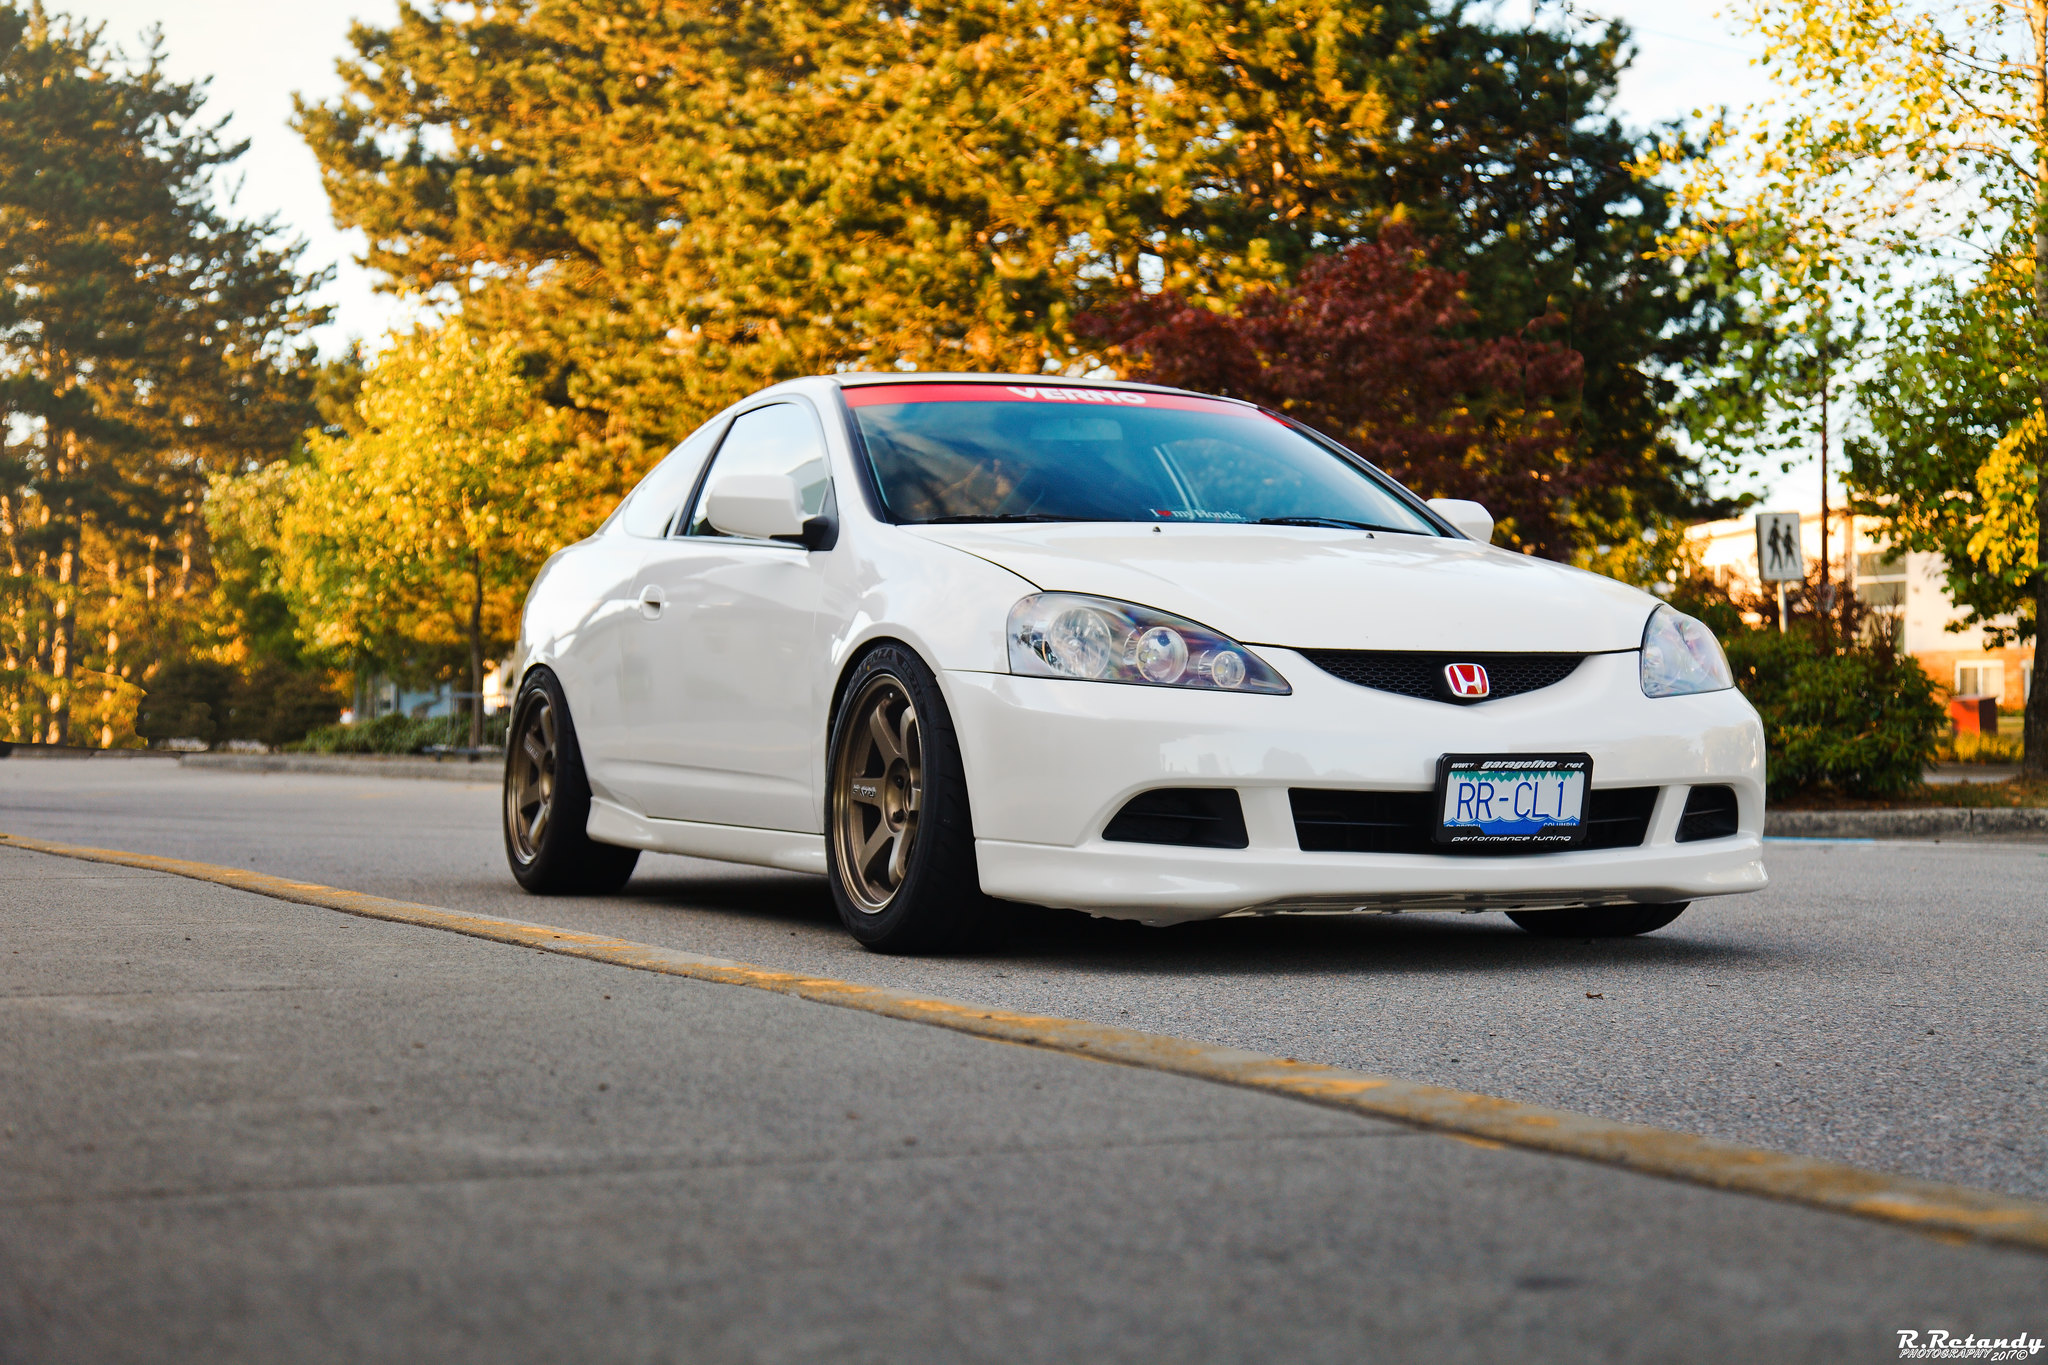 Ronald Type R Project Dc5 Integra Type S V2 0 Club Rsx